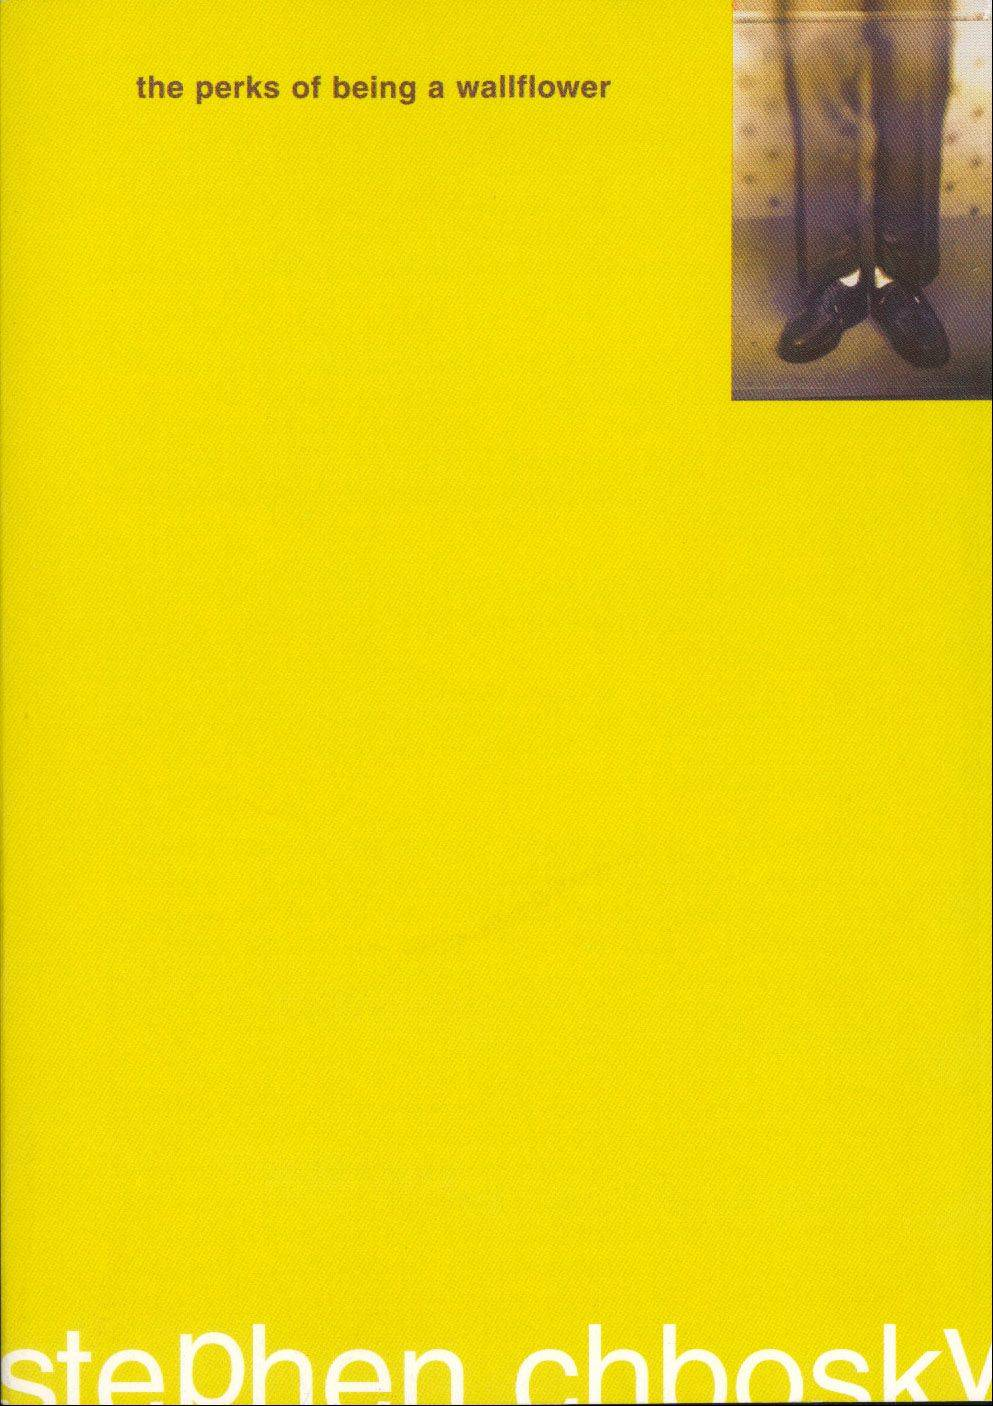 �The Perks of Being a Wallflower� by Stephen Chbosky